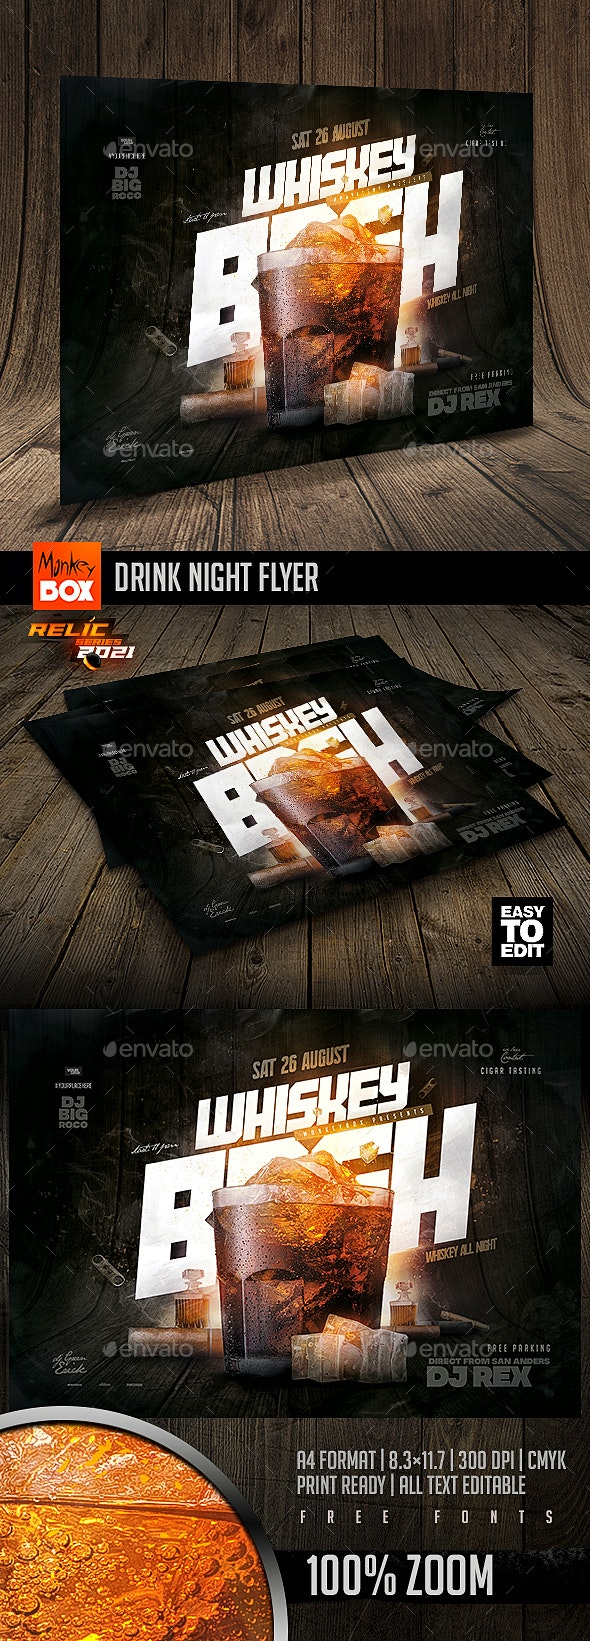 Drink Night Flyer - Events Flyers